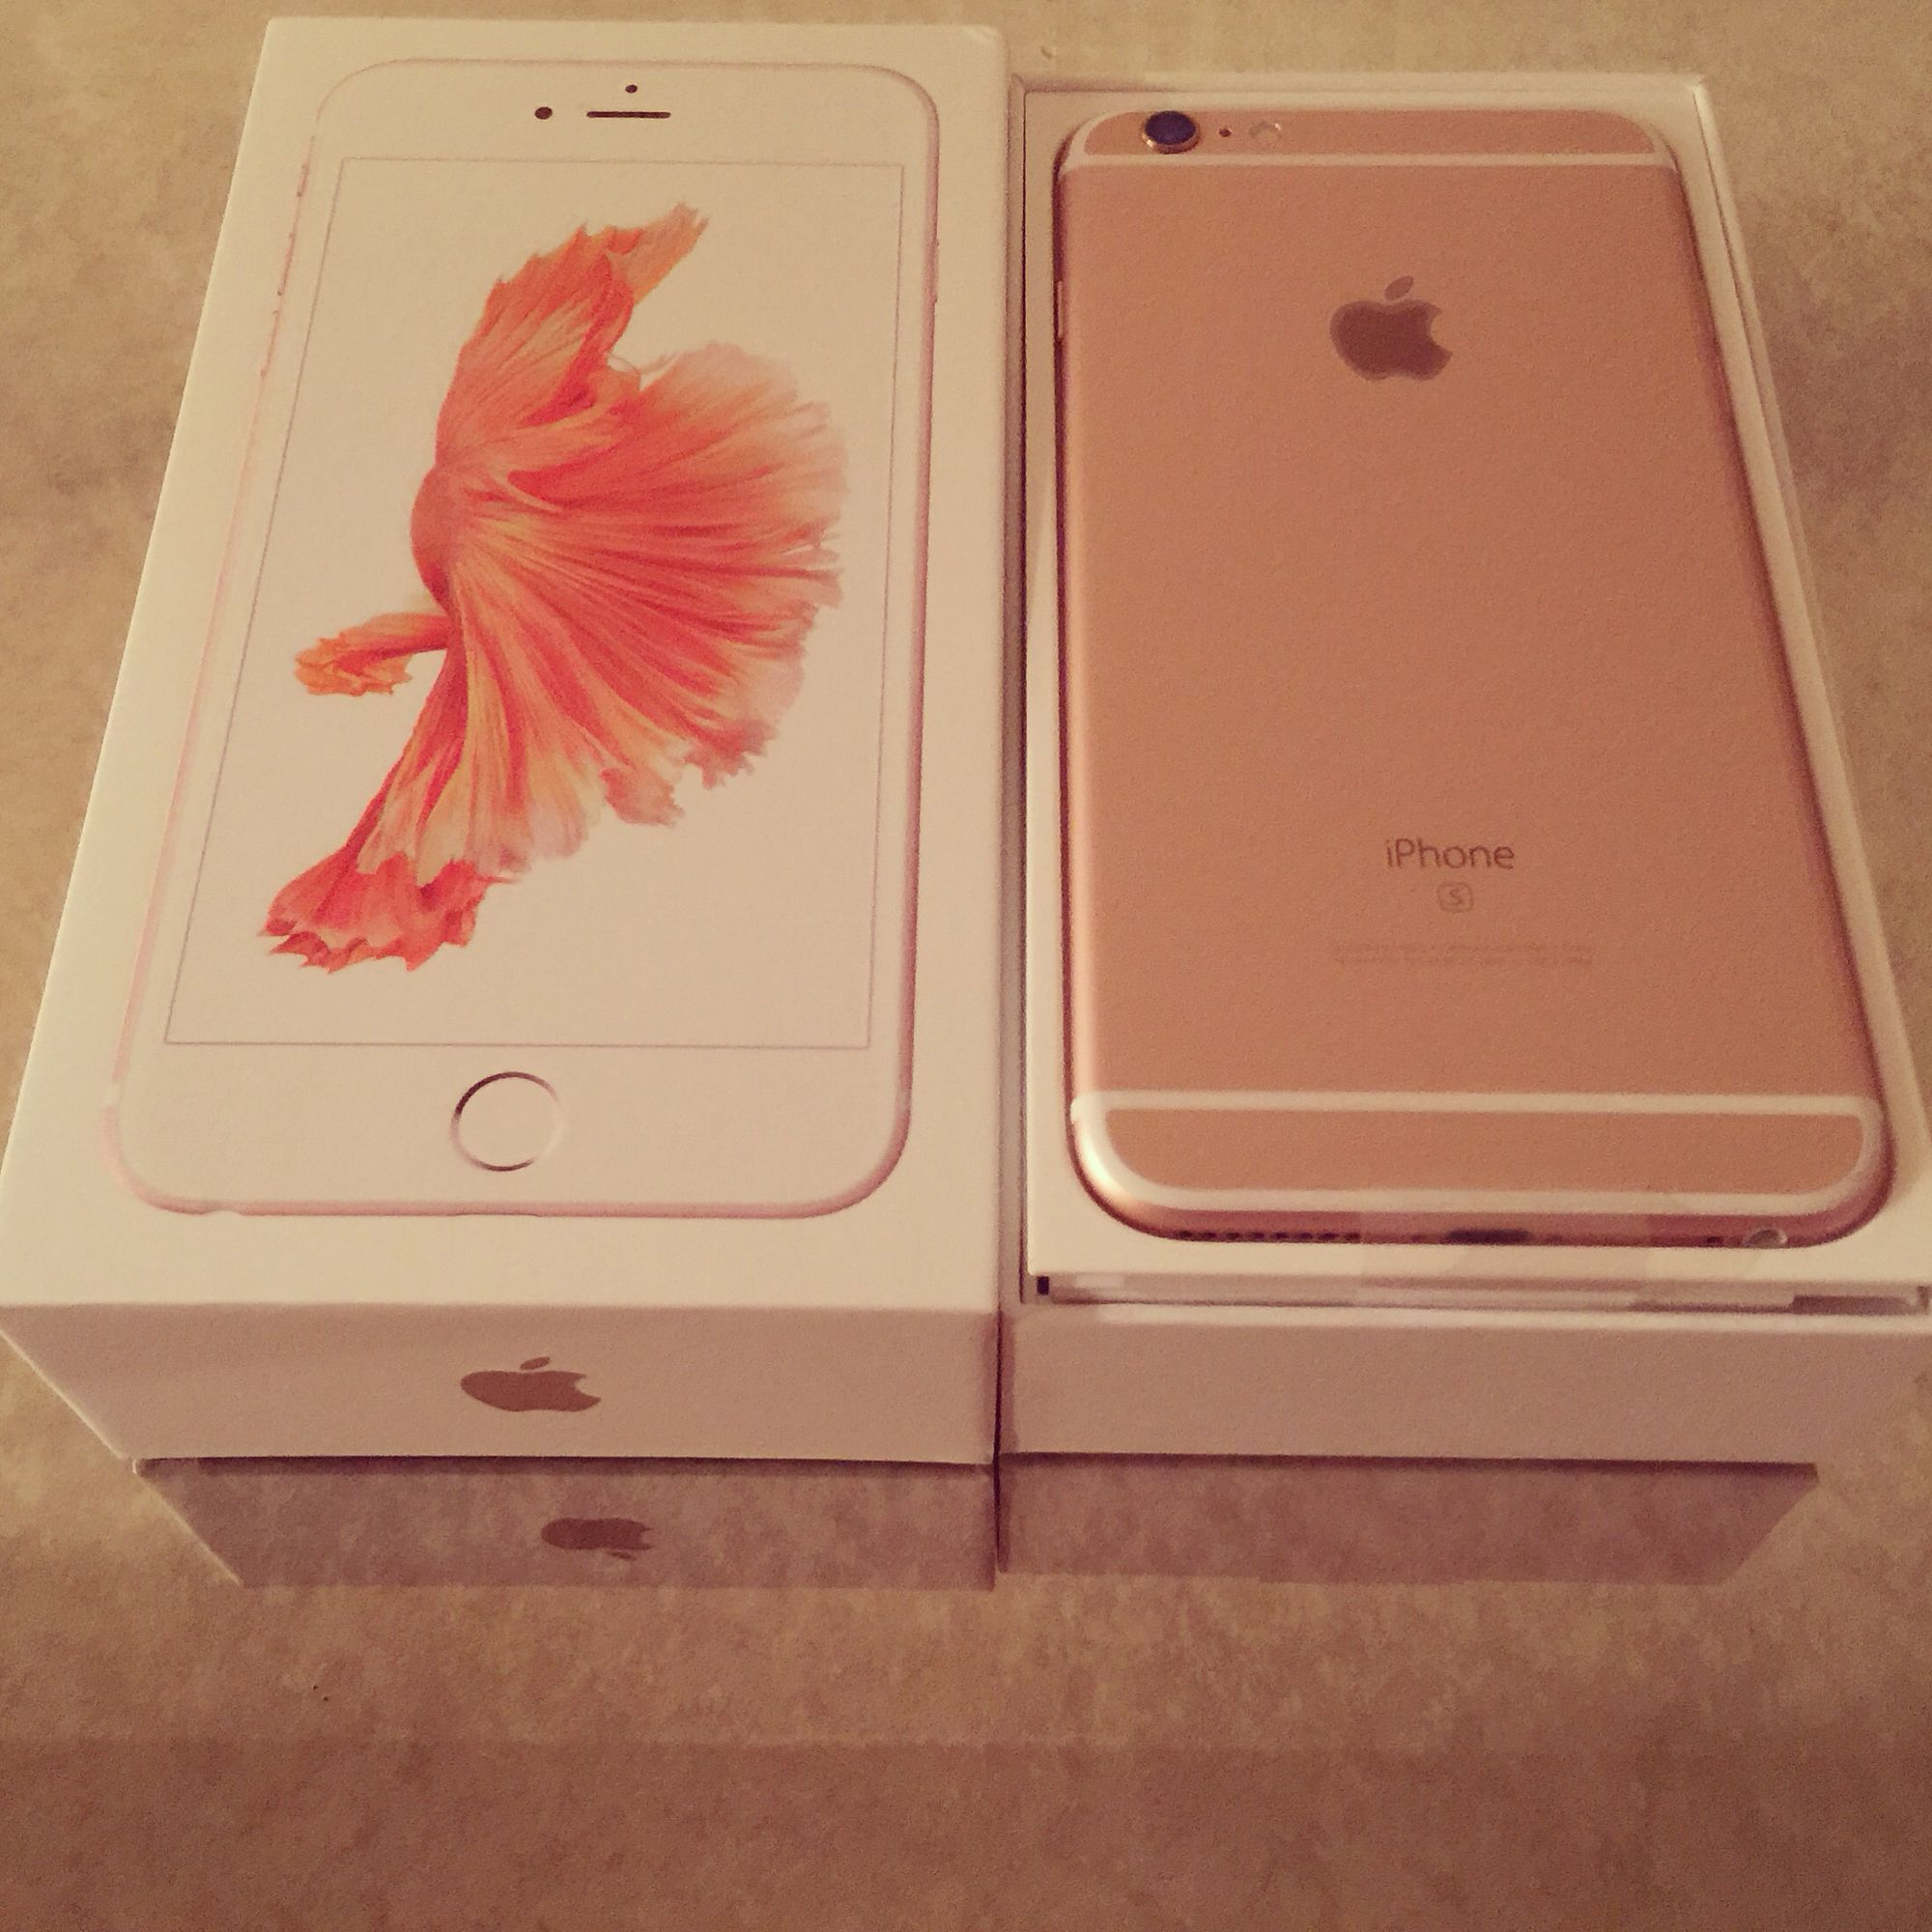 New Rose Gold iPhone 6s Plus 128GB | Iphone | Pinterest | iPhone 6, Roses and Gold